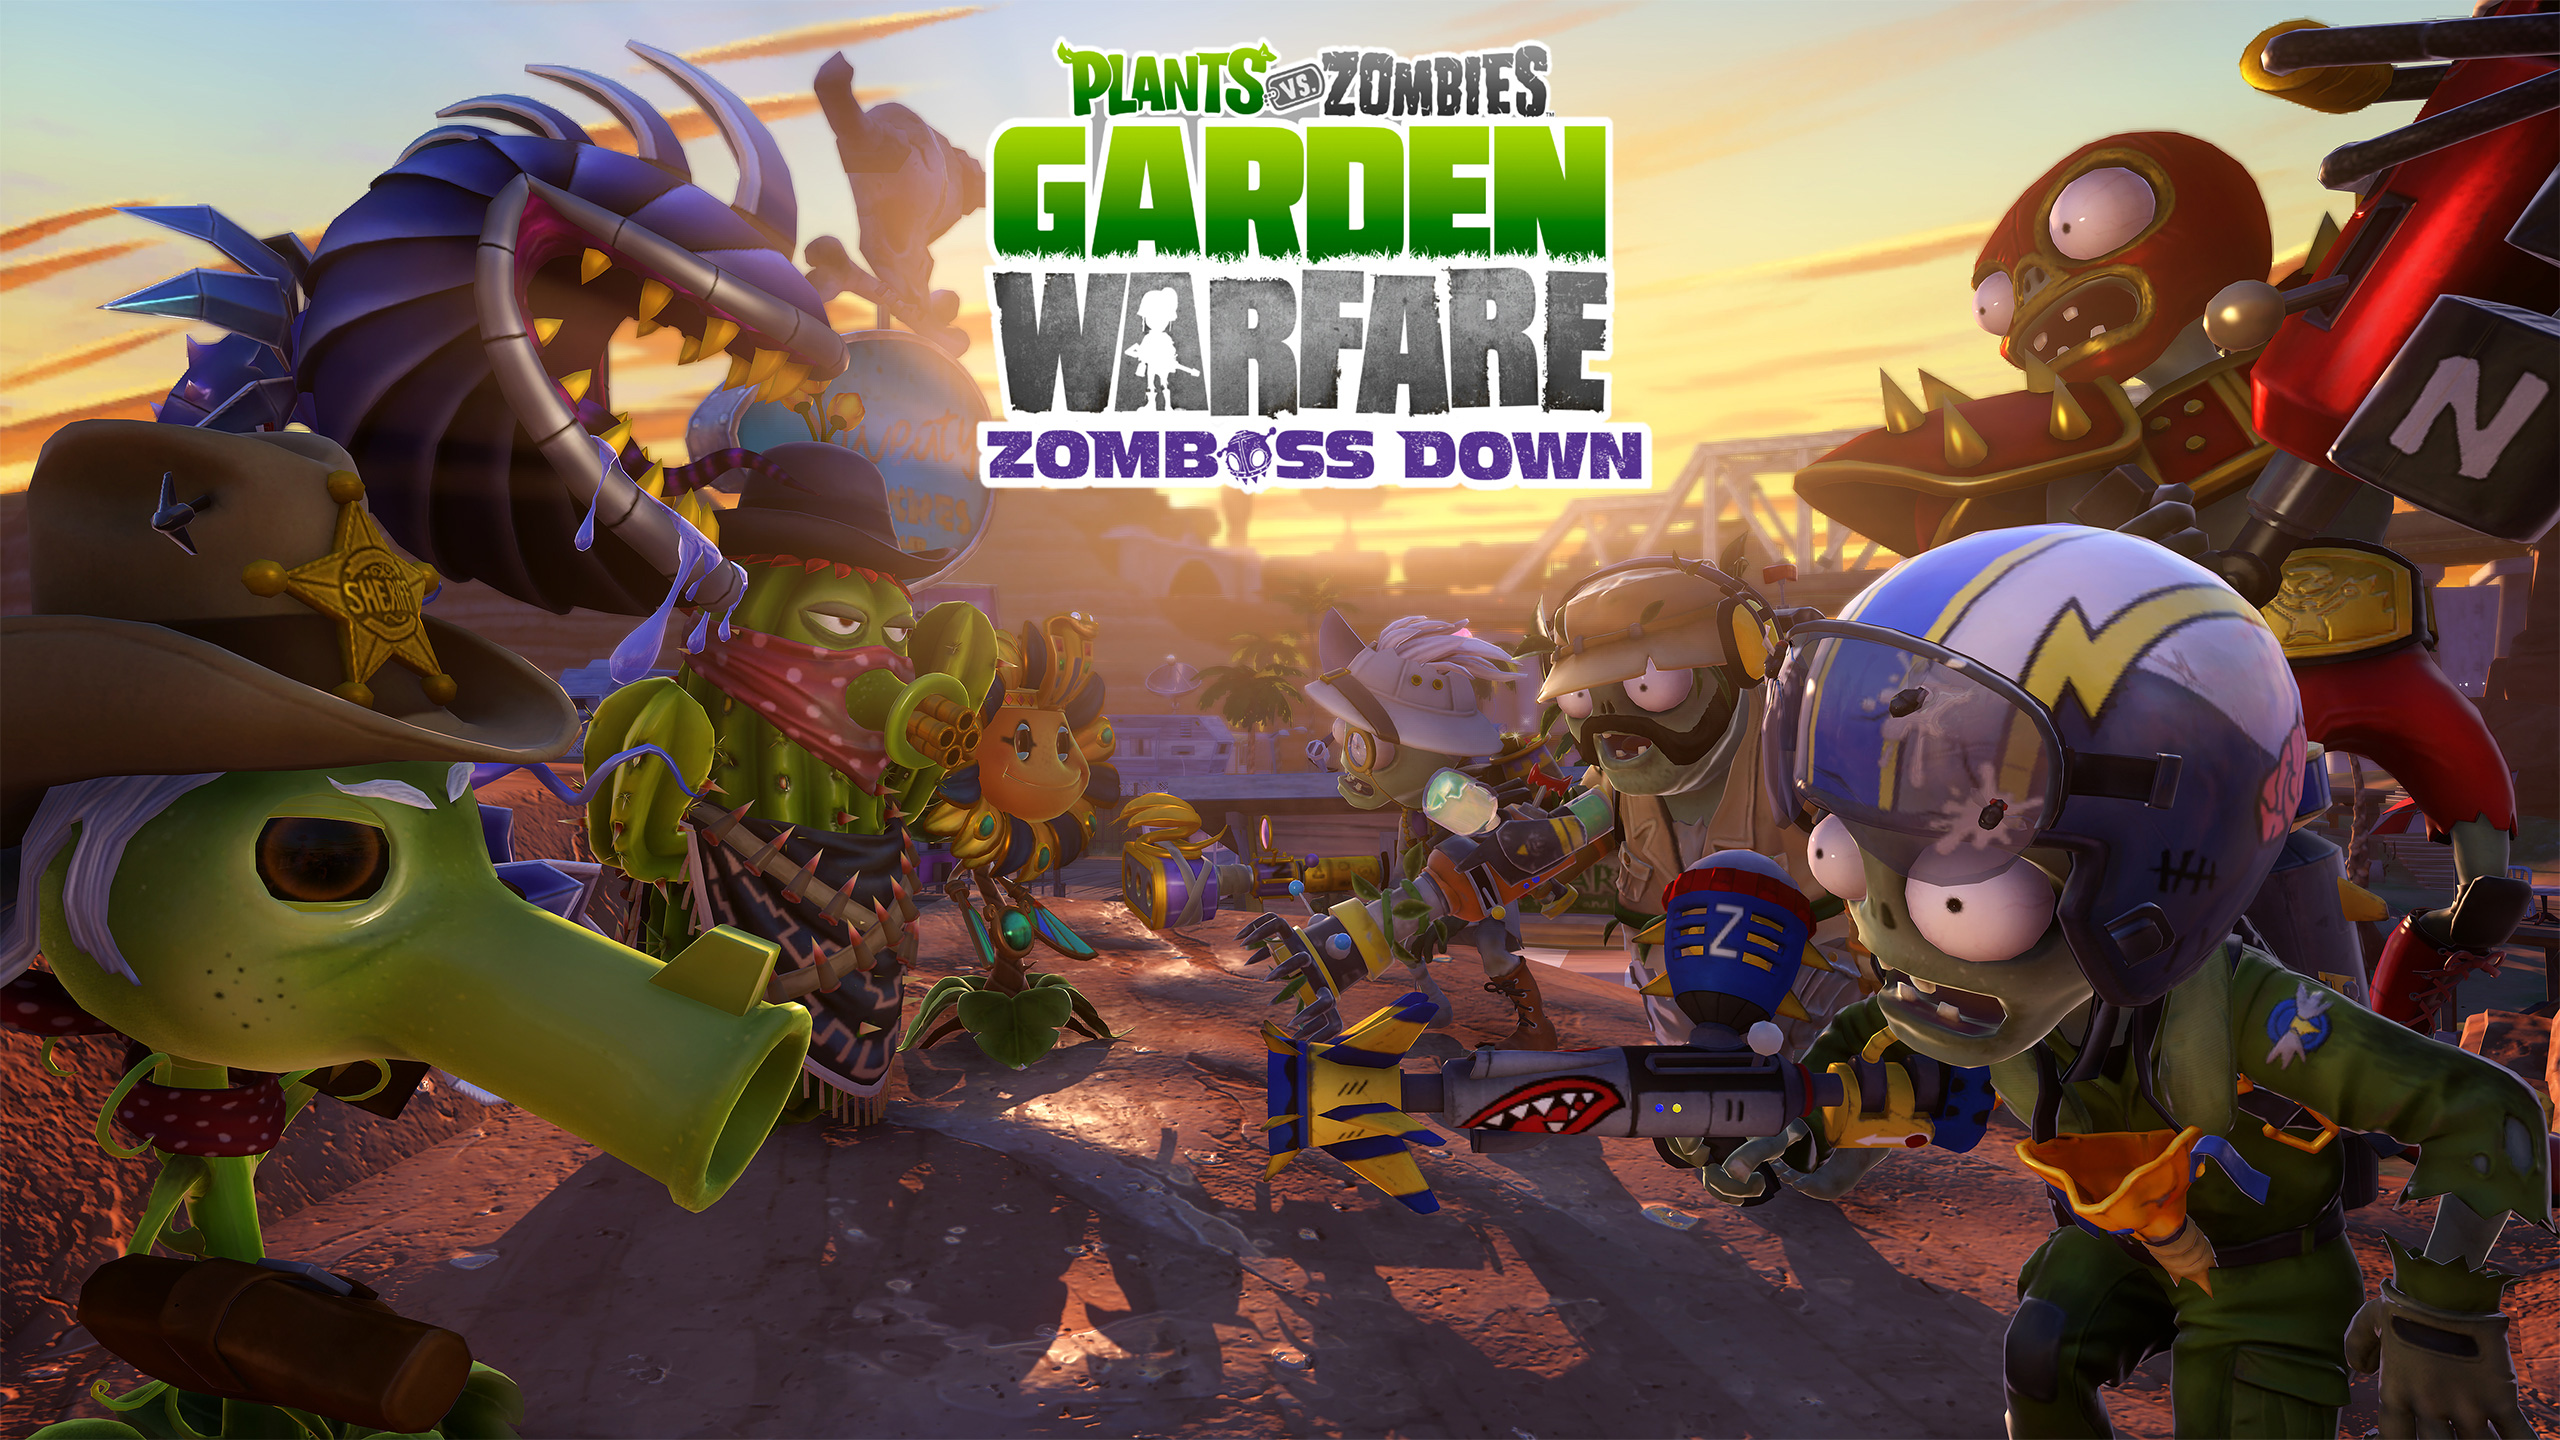 Hefty New Chunk Of Plants Vs Zombies Garden Warfare Dlc Adds New Characters And A New Map